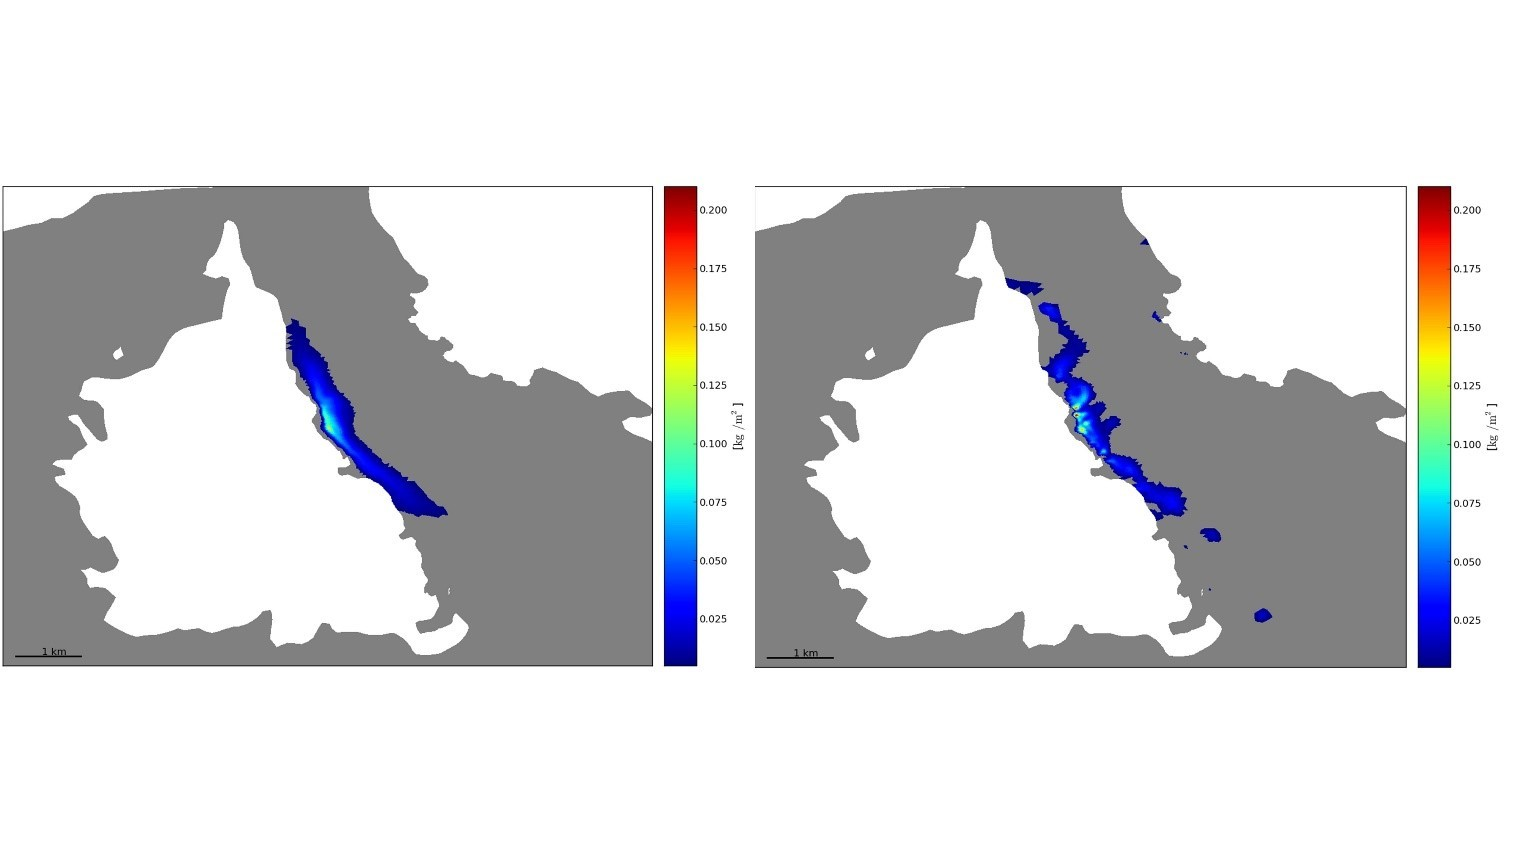 Figure 4: Modeled sediment concentration (kg/m2) at the bottom after 1 week of release from a fish farm in Økssundet. The panel to the right shows the result without resuspension and the right panel shows the result with resuspension.